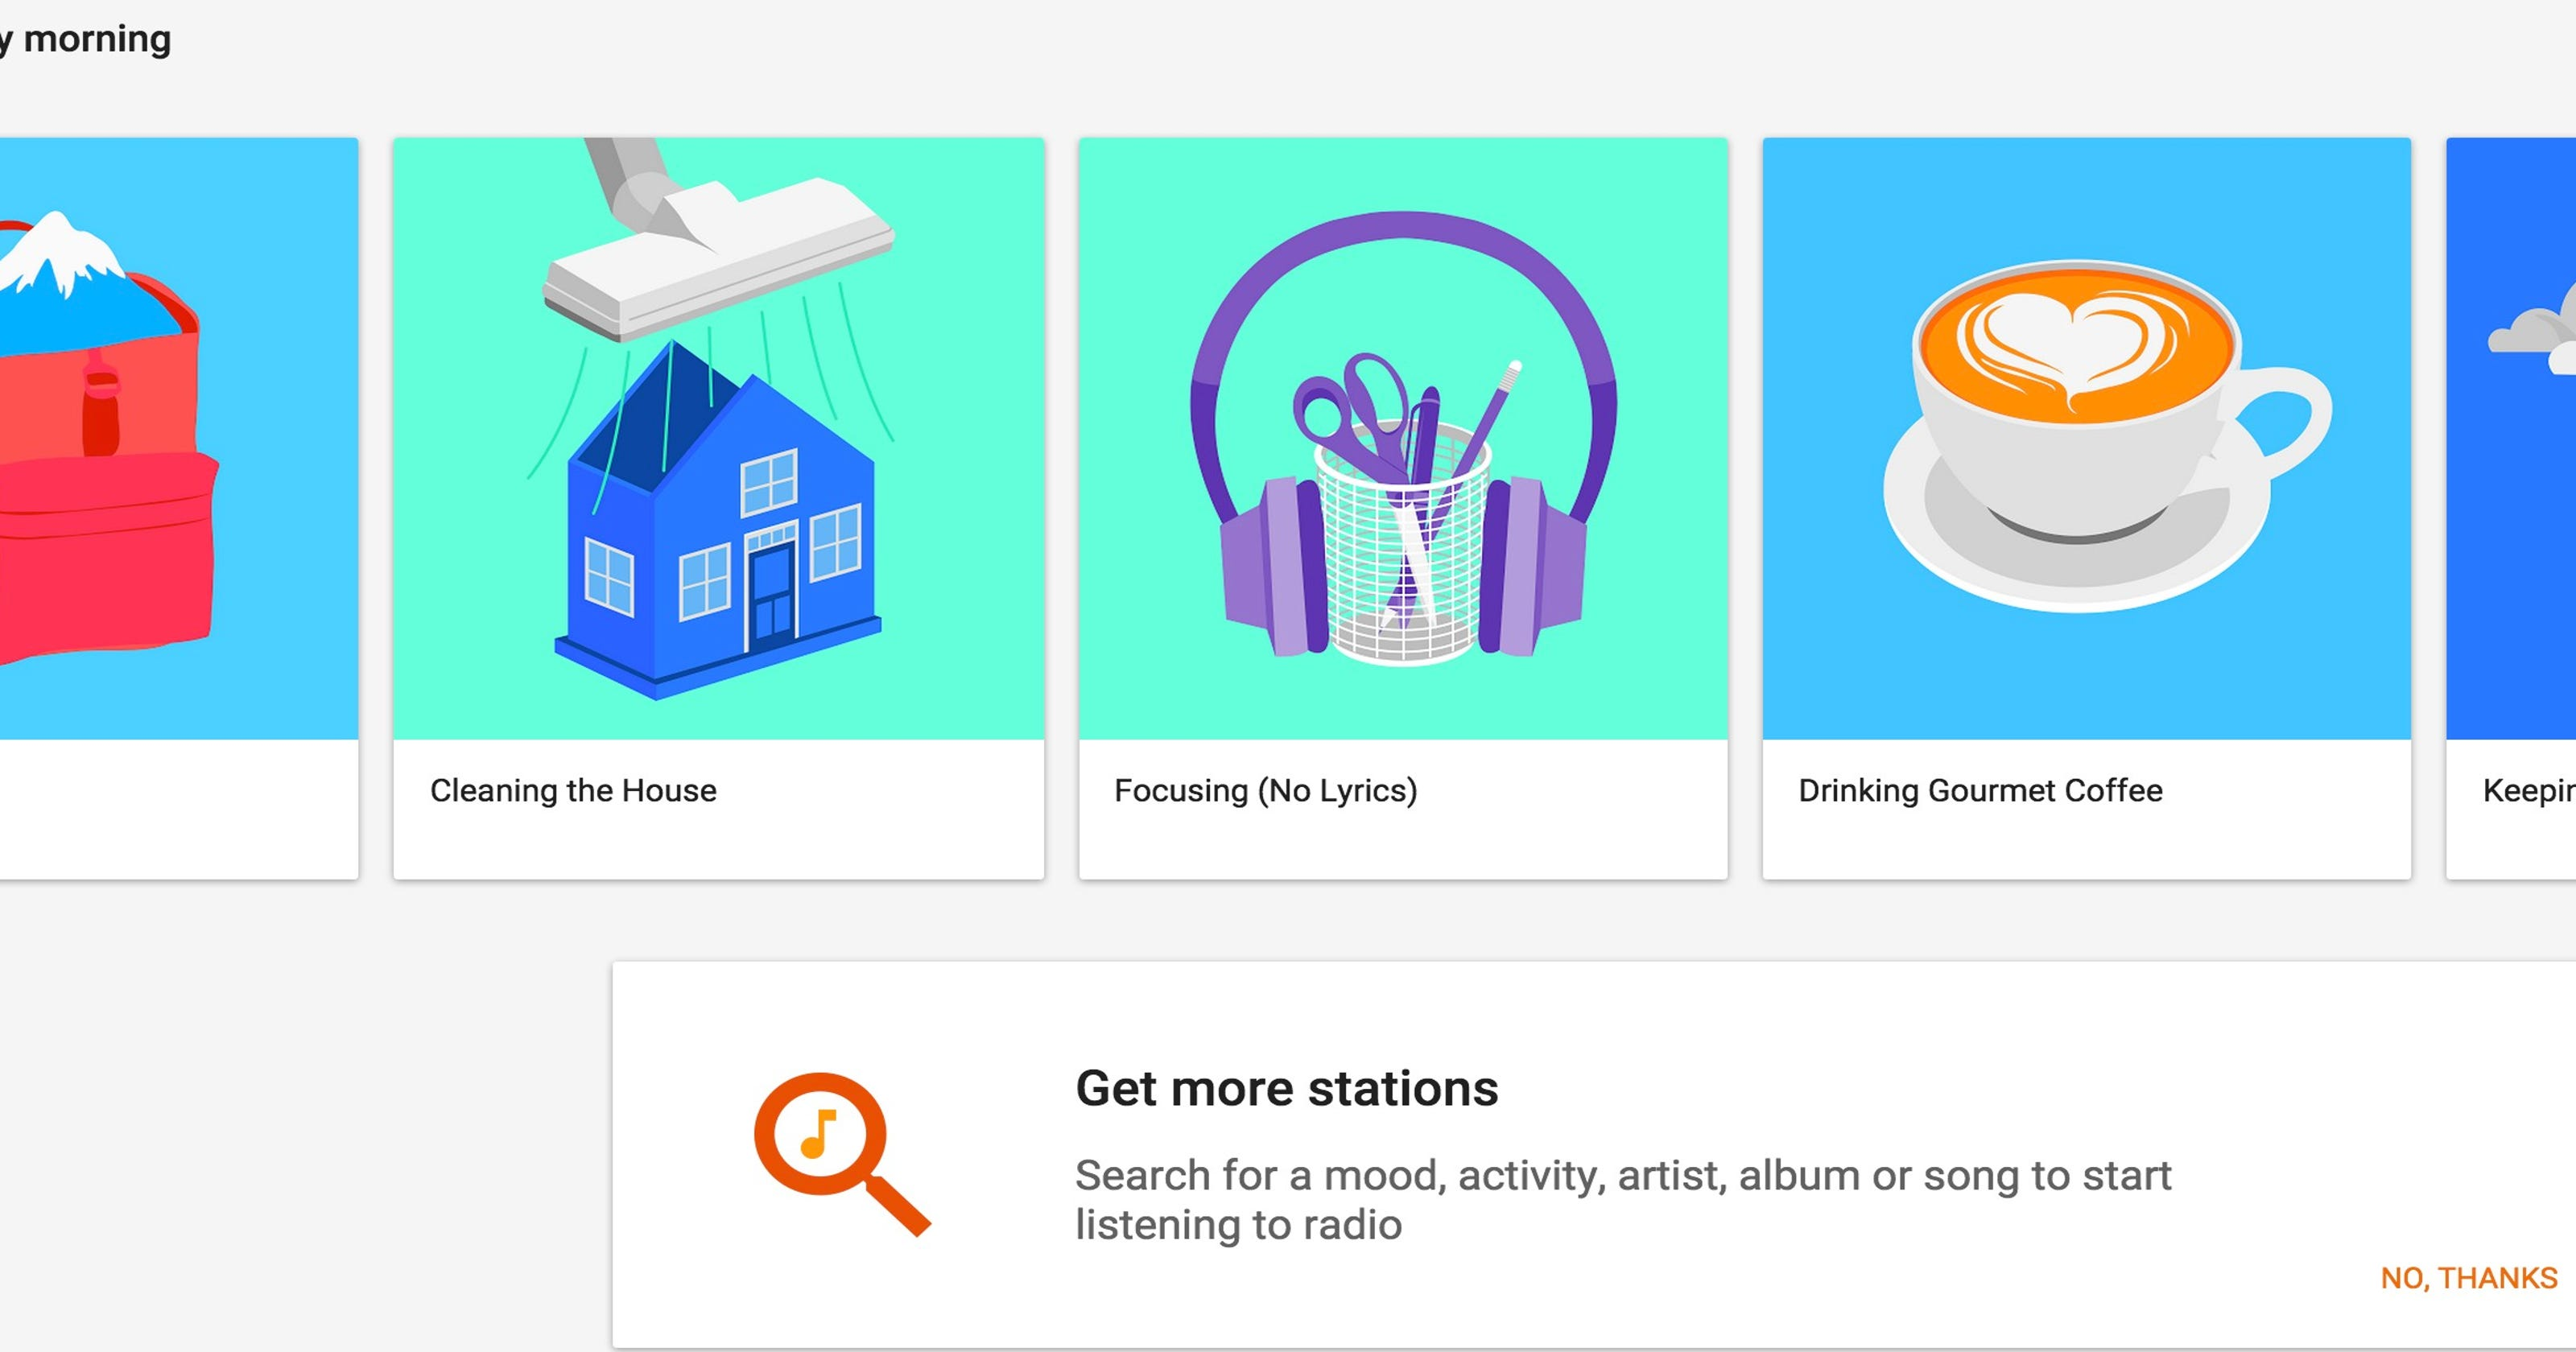 First Look - Google Play Music has 1000s of free music playlists